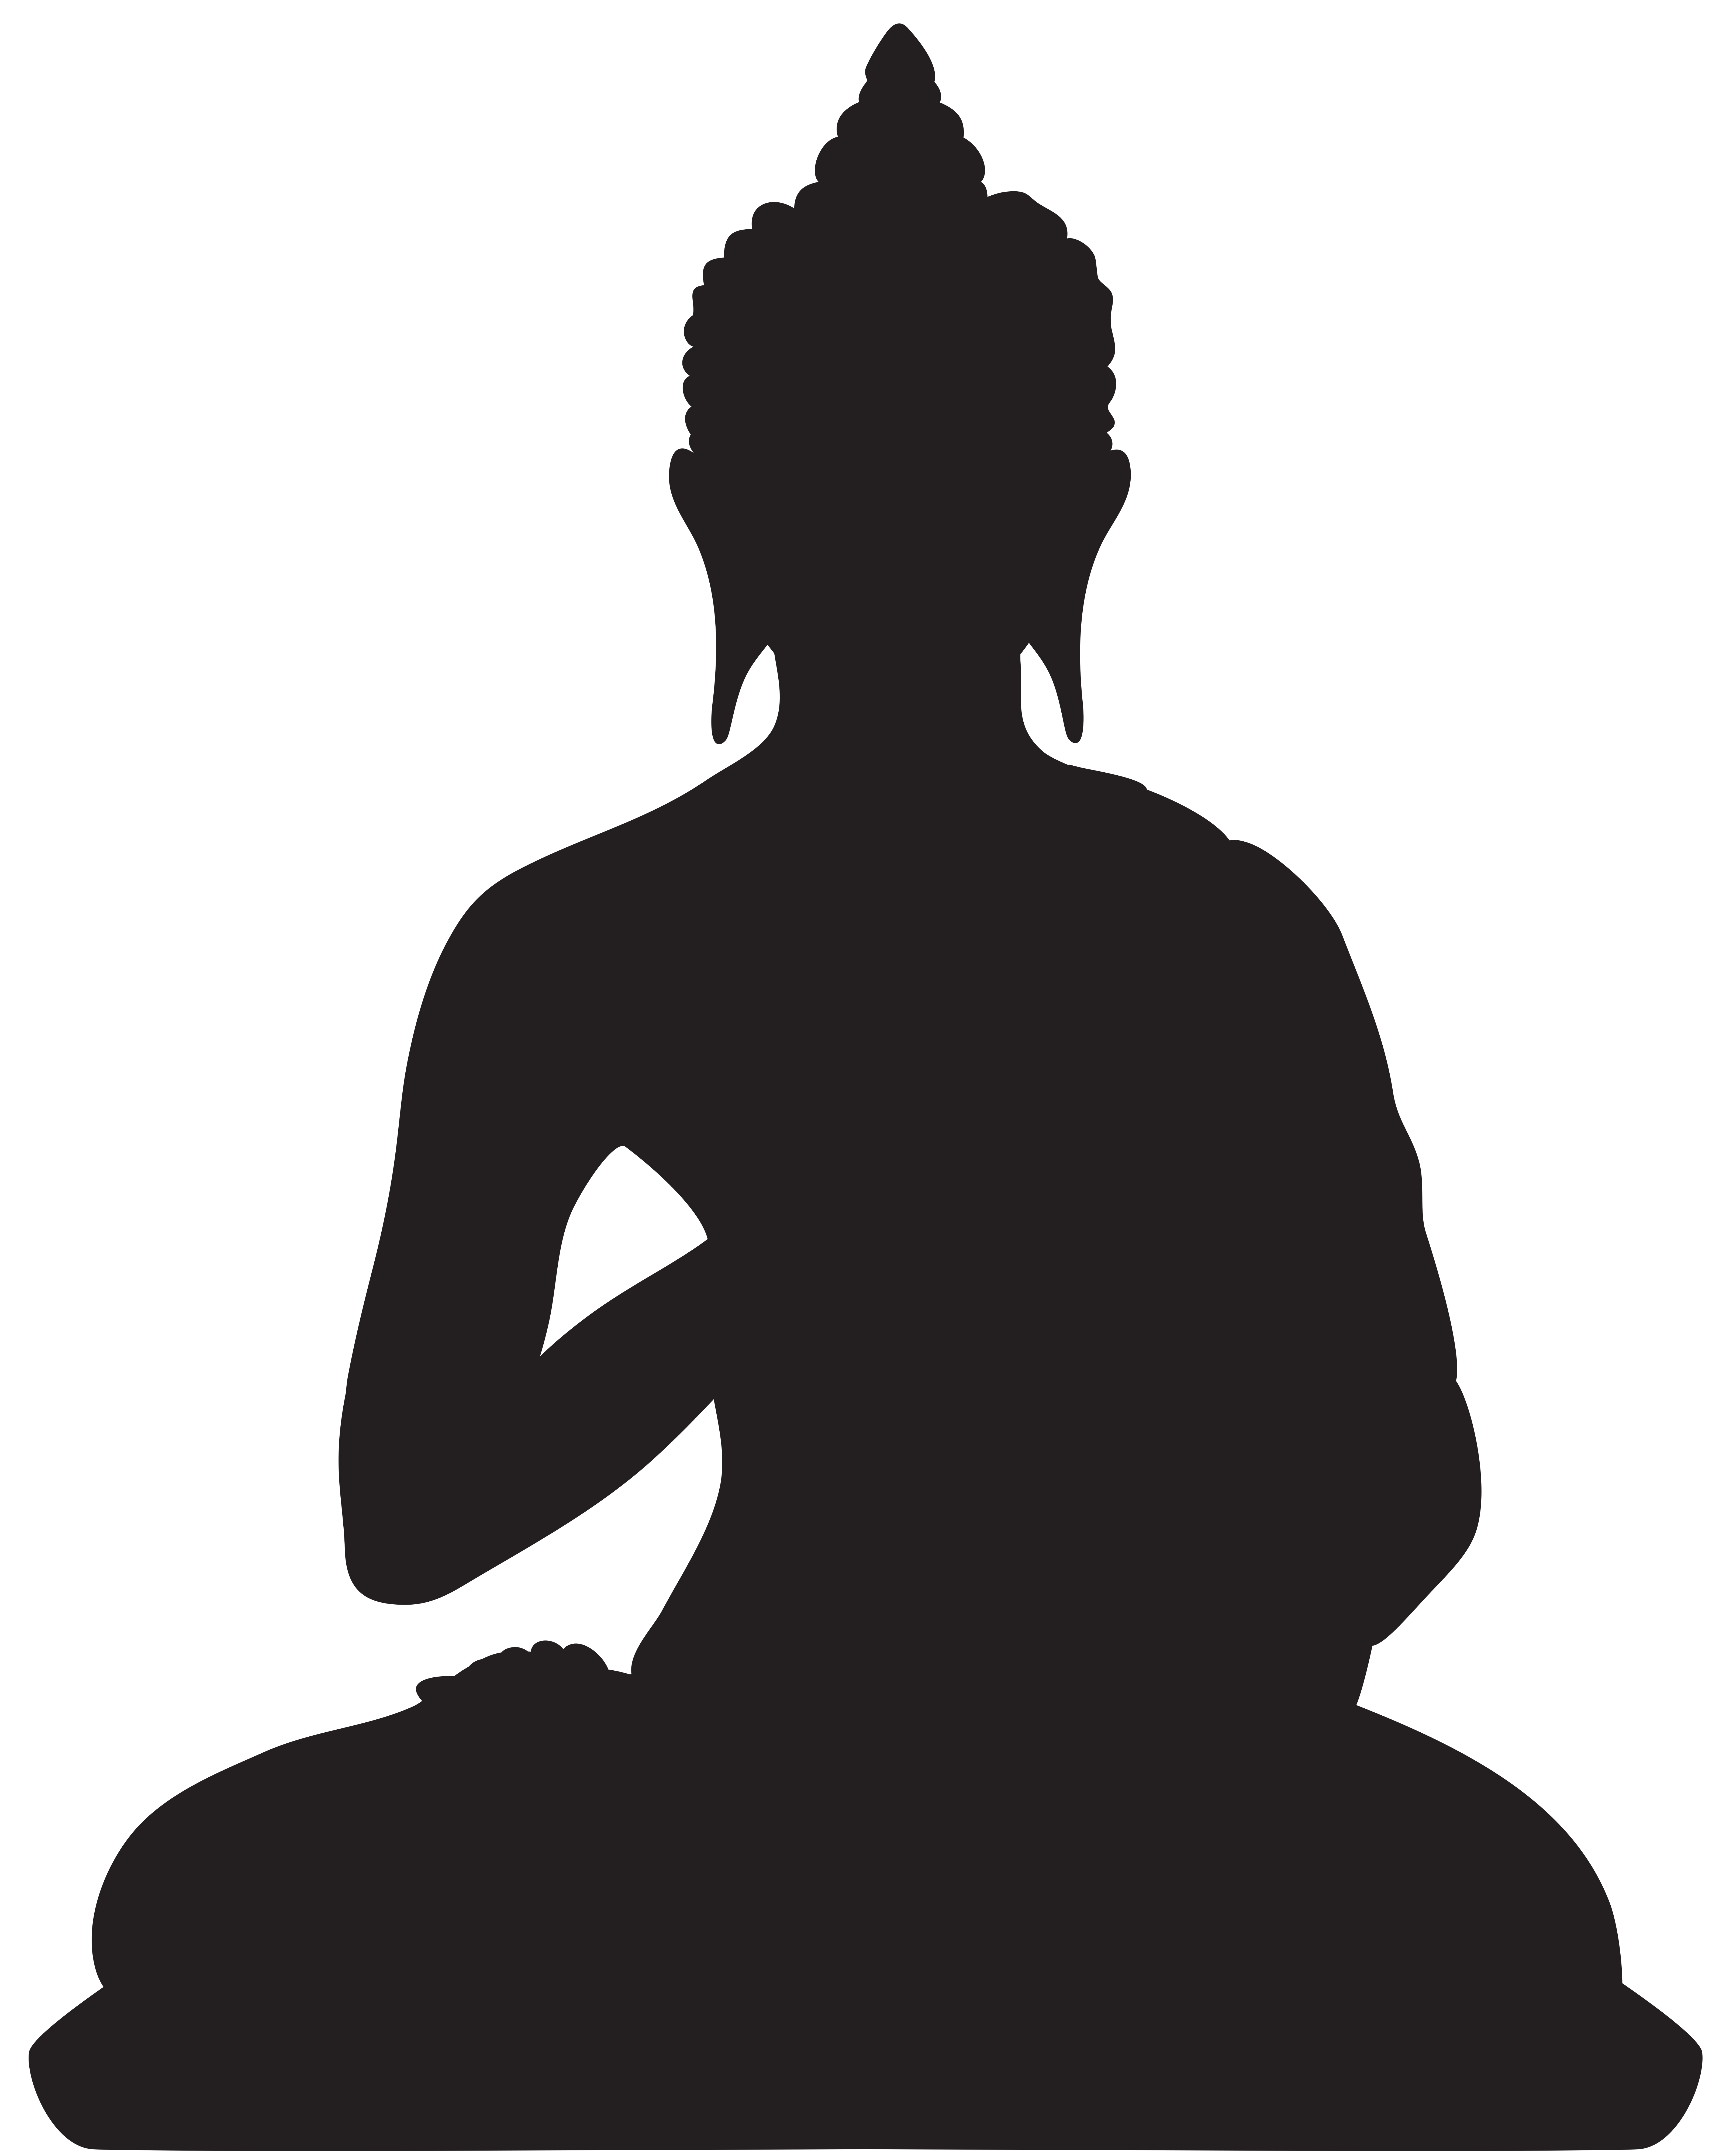 Buddha silhouette png clip. Parrot clipart shadow